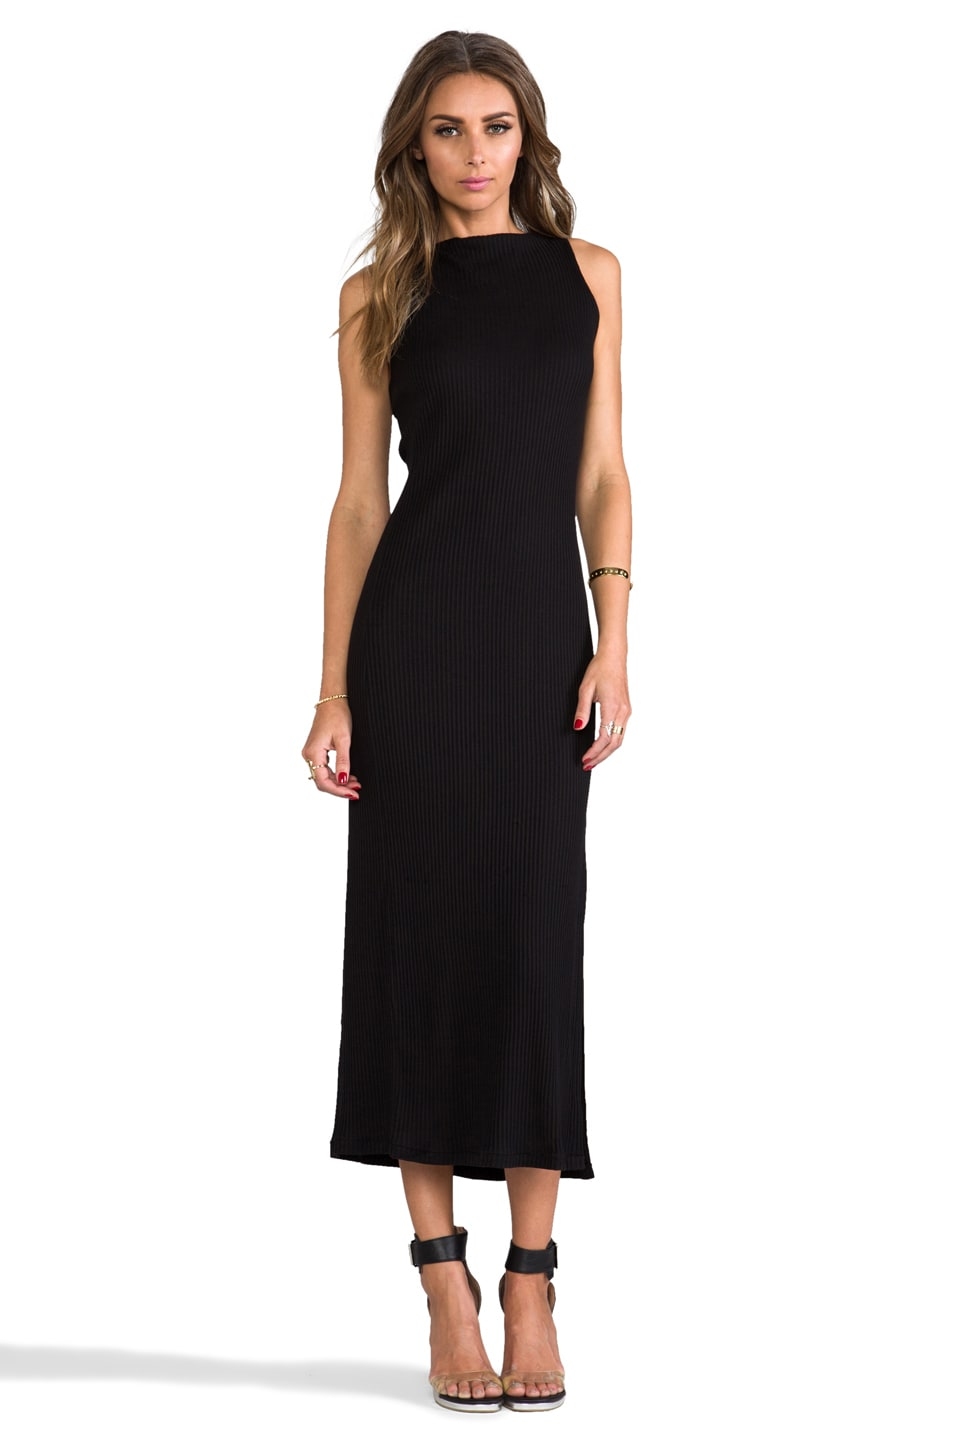 David Michael Helix Dress in Black